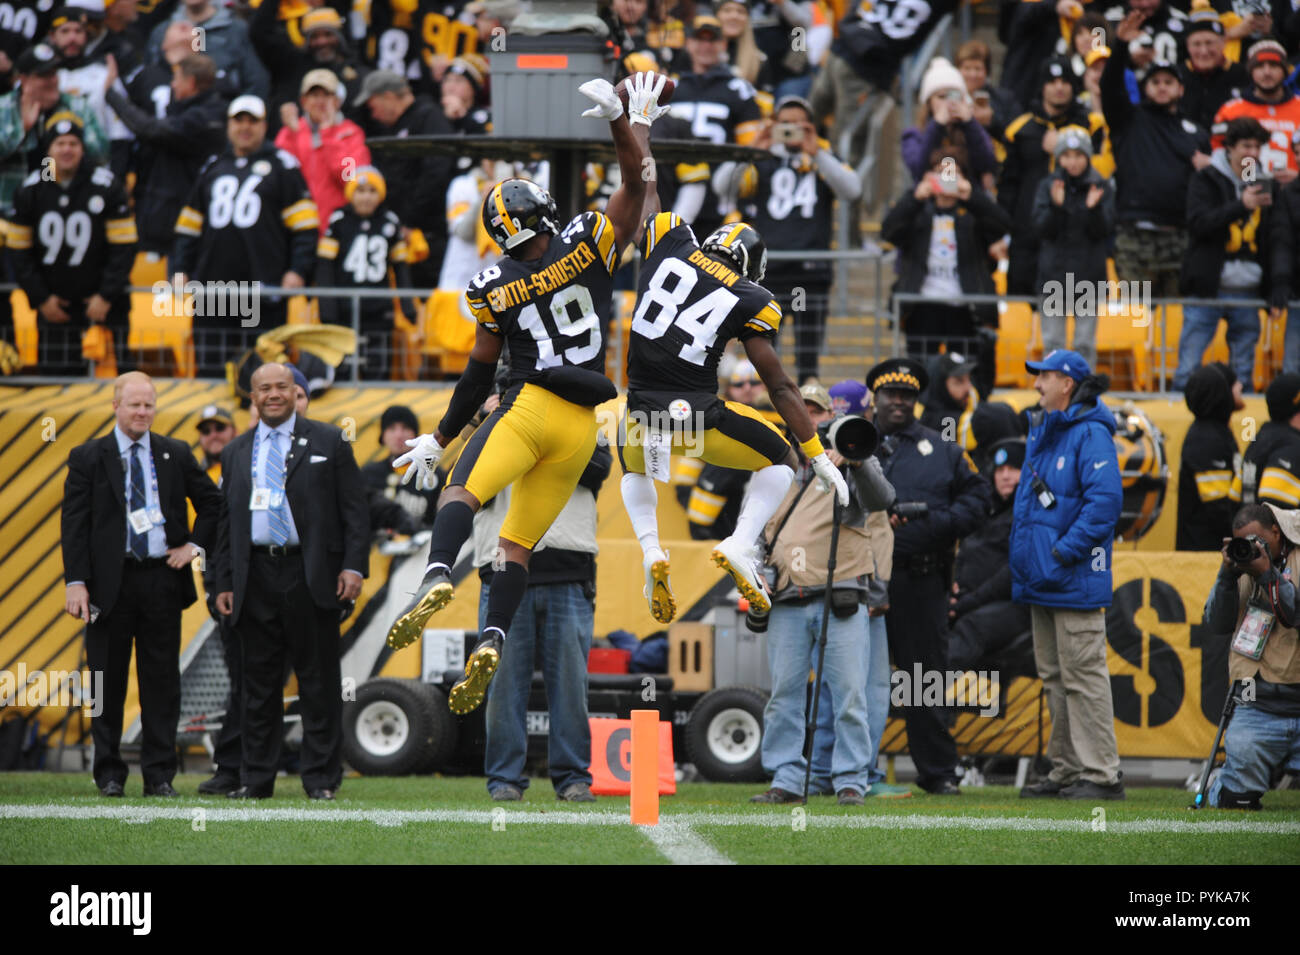 f114db4da7c October 28th, 2018: Steelers #84 Antonio Brown, and Steelers #19 JuJu